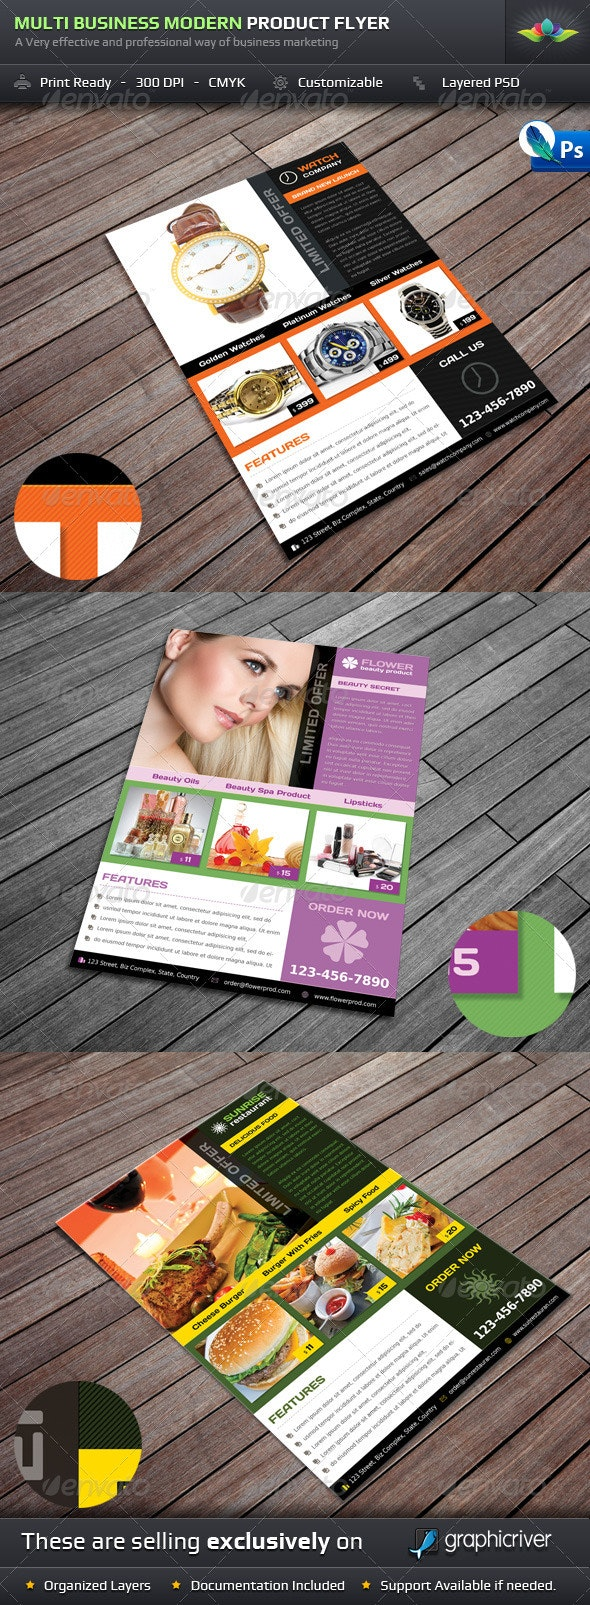 Multi Business Modern Product Flyer - Corporate Flyers